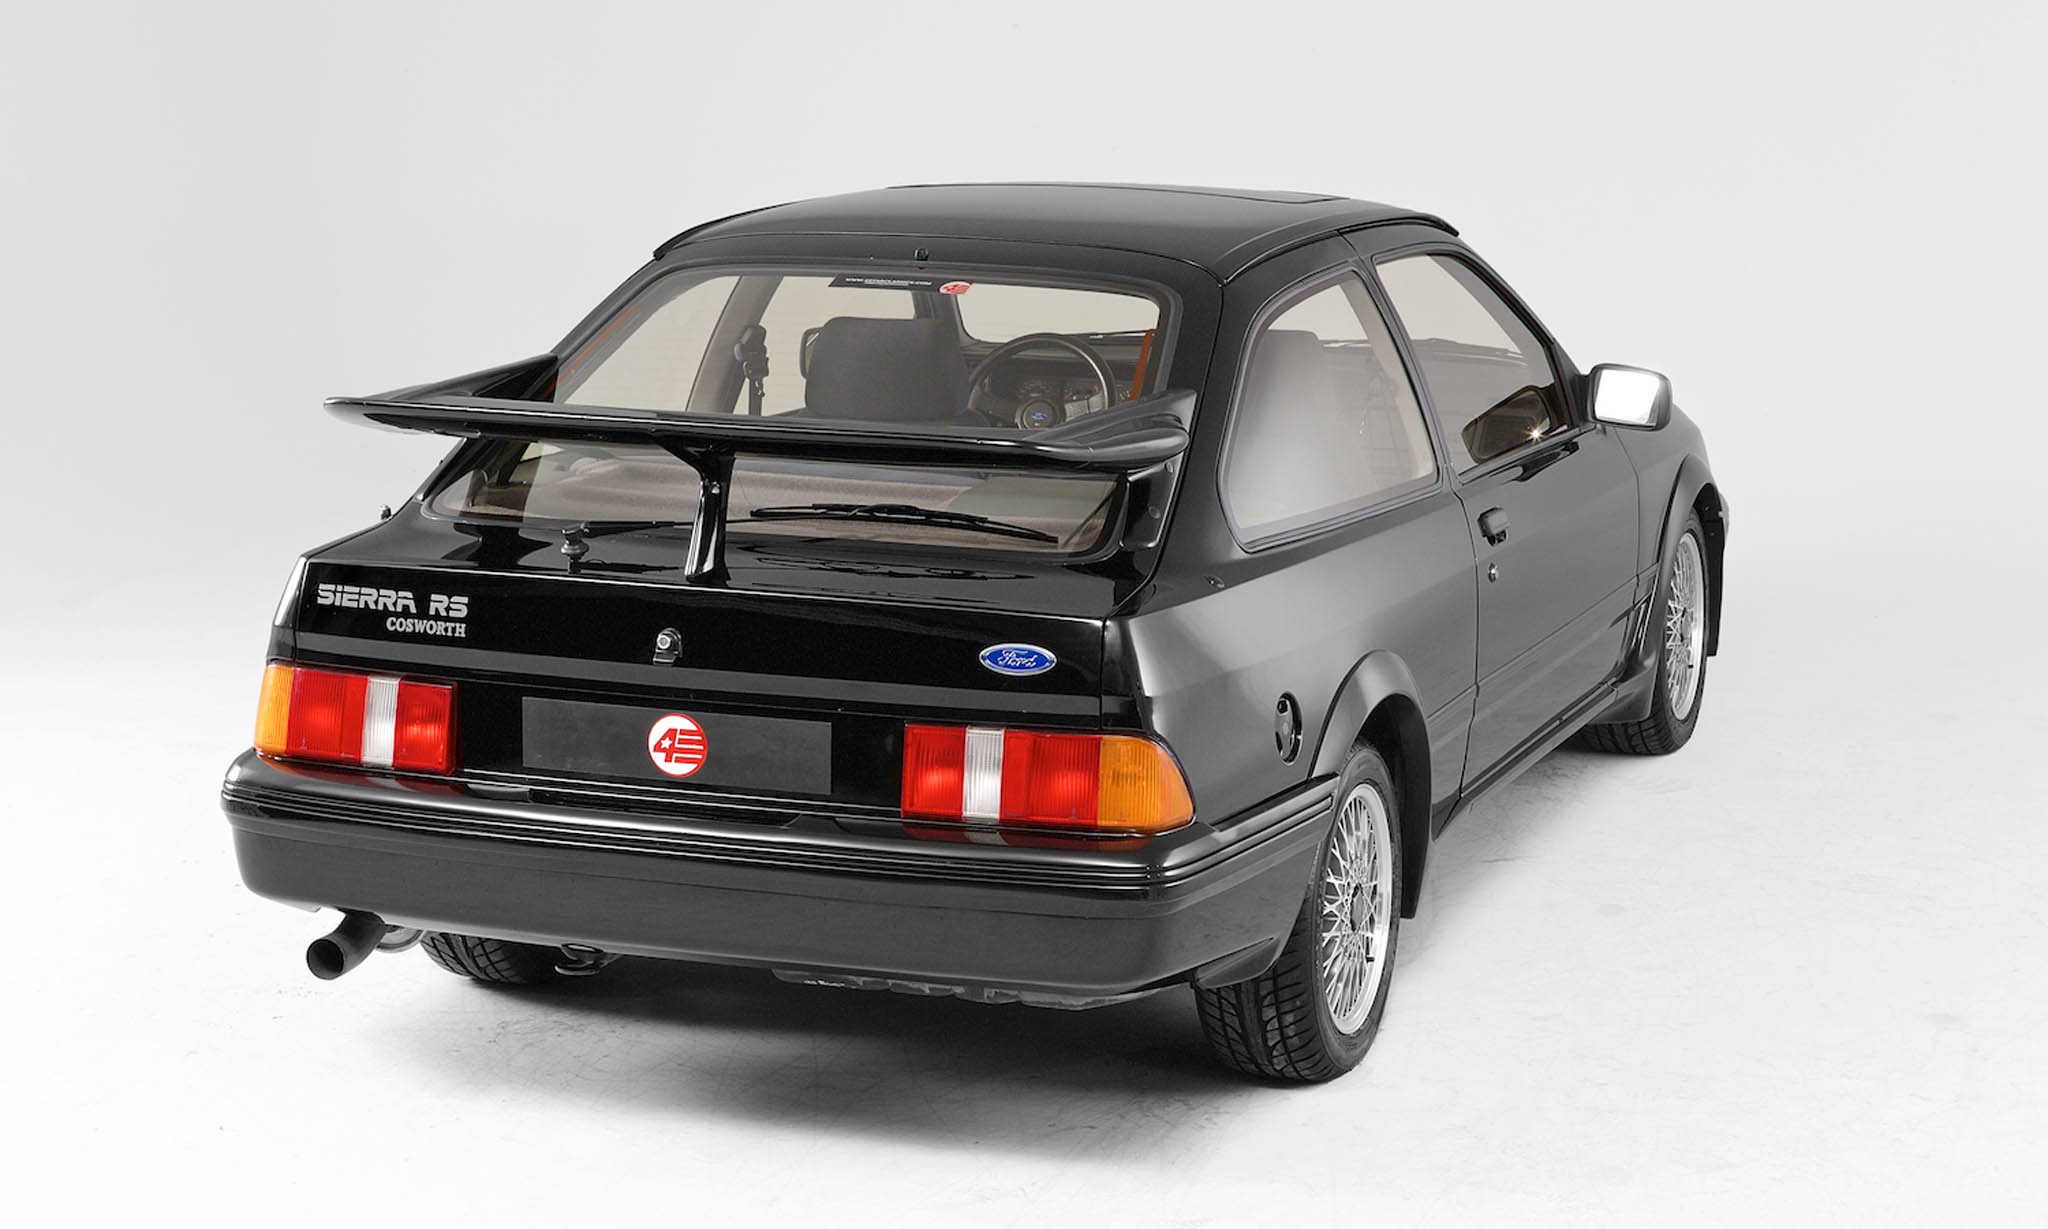 ford sierra rs cosworth 1986 sprzedany gie da klasyk w. Black Bedroom Furniture Sets. Home Design Ideas